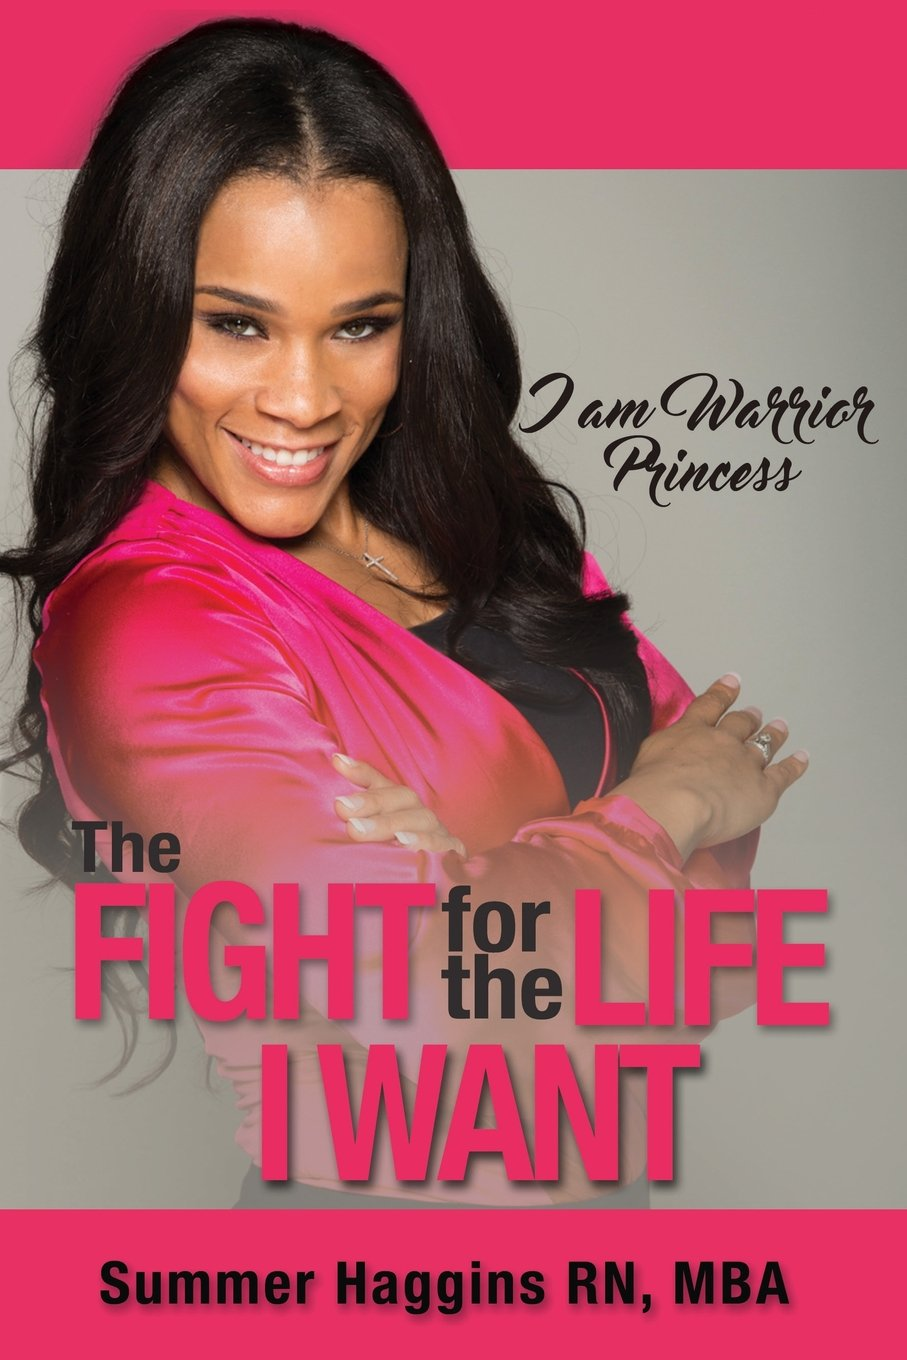 I Am Warrior Princess: The Fight for the Life I Want